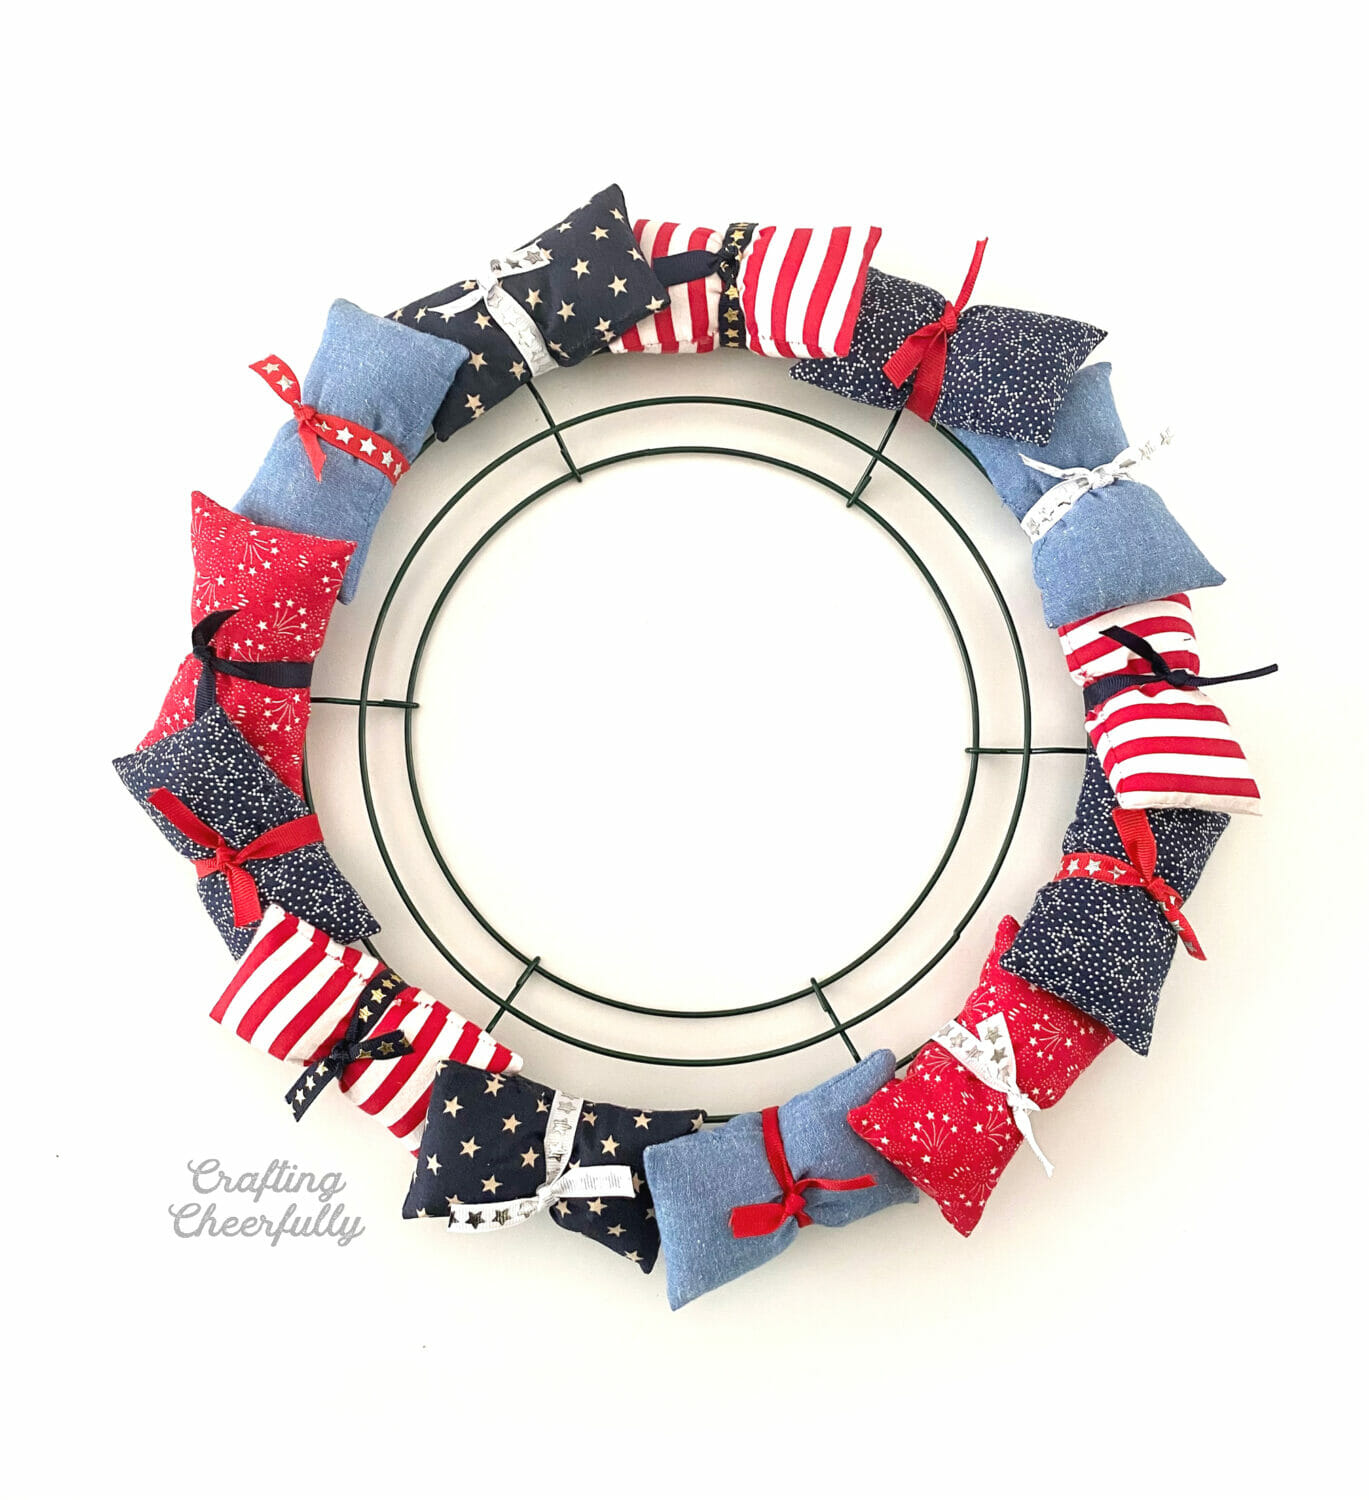 Fabric pillows tied around a wire wreath frame using ribbon.